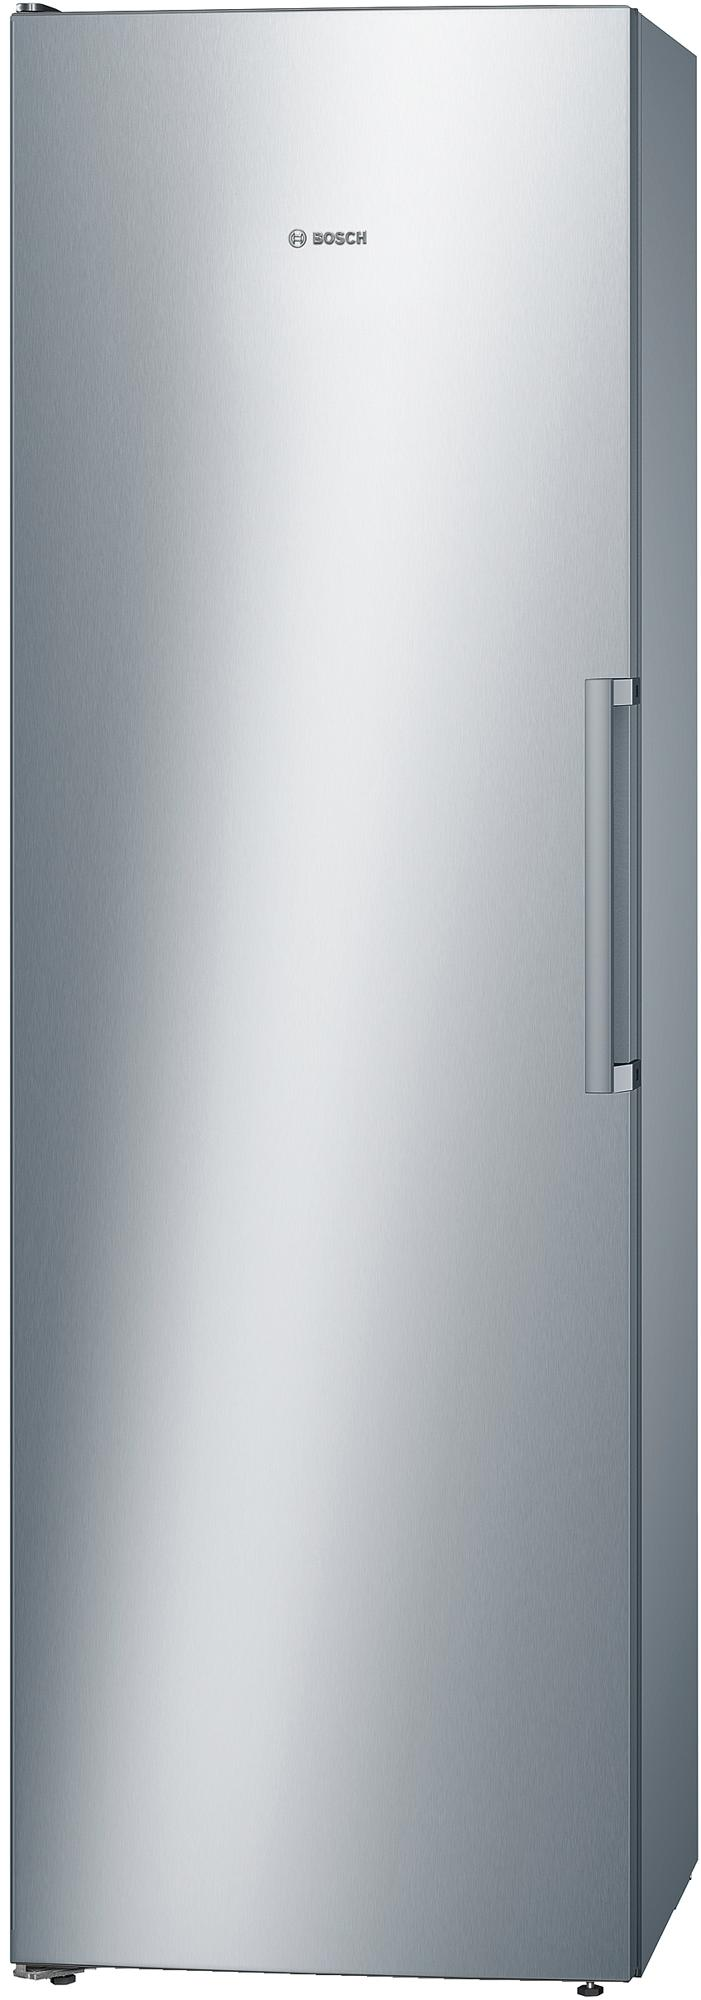 k hlschrank bosch ksv36vl40 edelstahl optik von bosch gro ger te bei elektroshop wagner. Black Bedroom Furniture Sets. Home Design Ideas